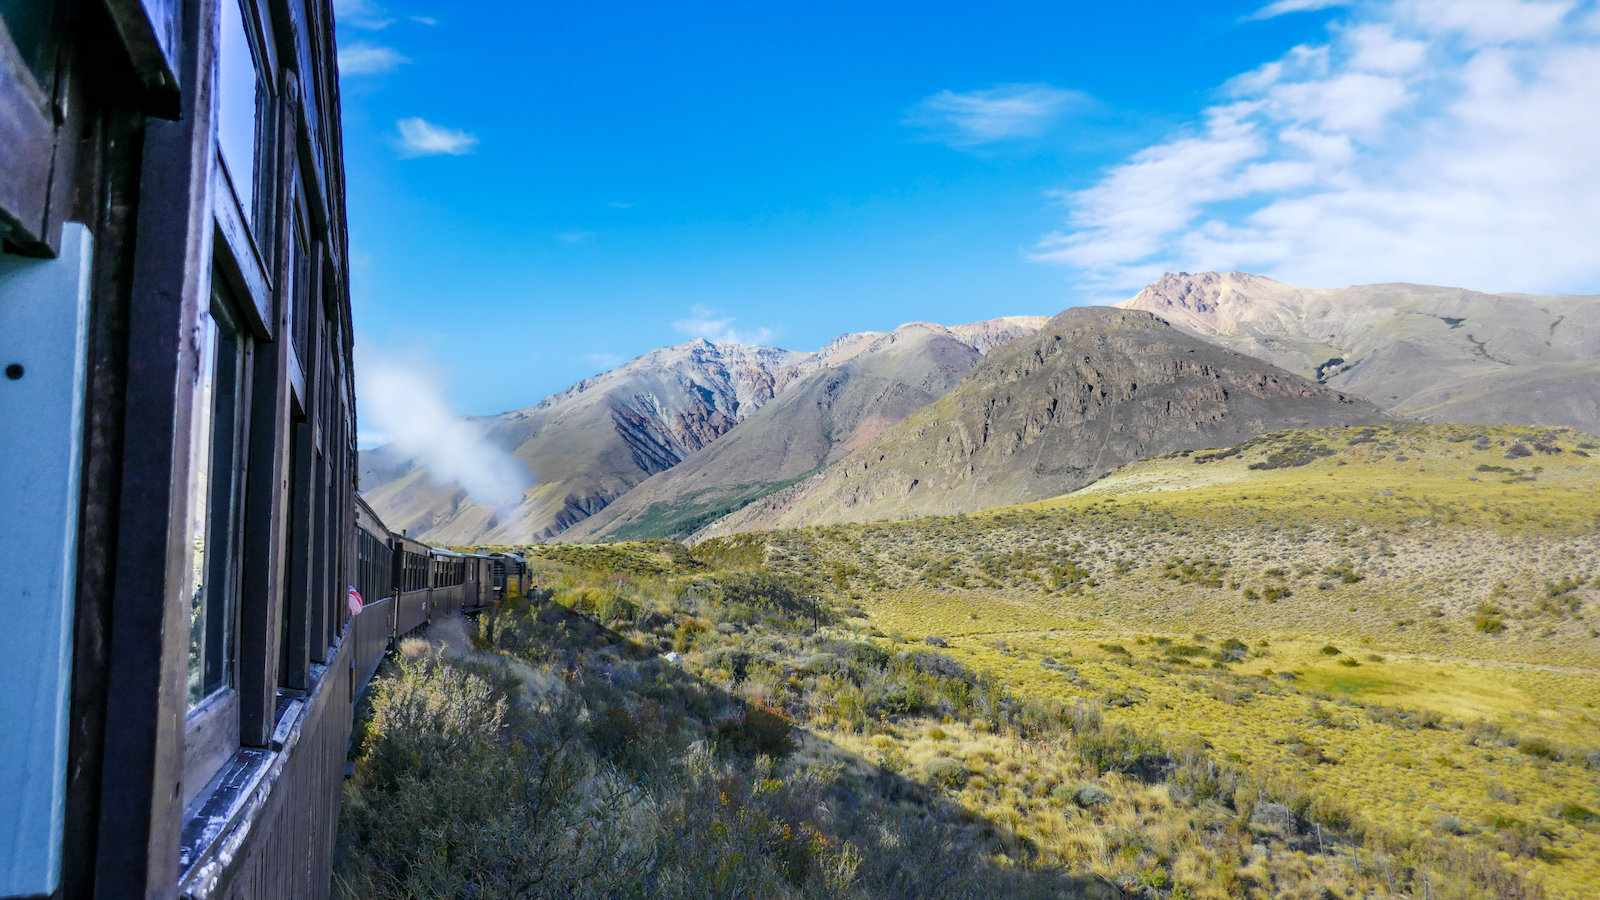 A ride on the Old Patagonia Express steam train is a real highlight of Patagonia